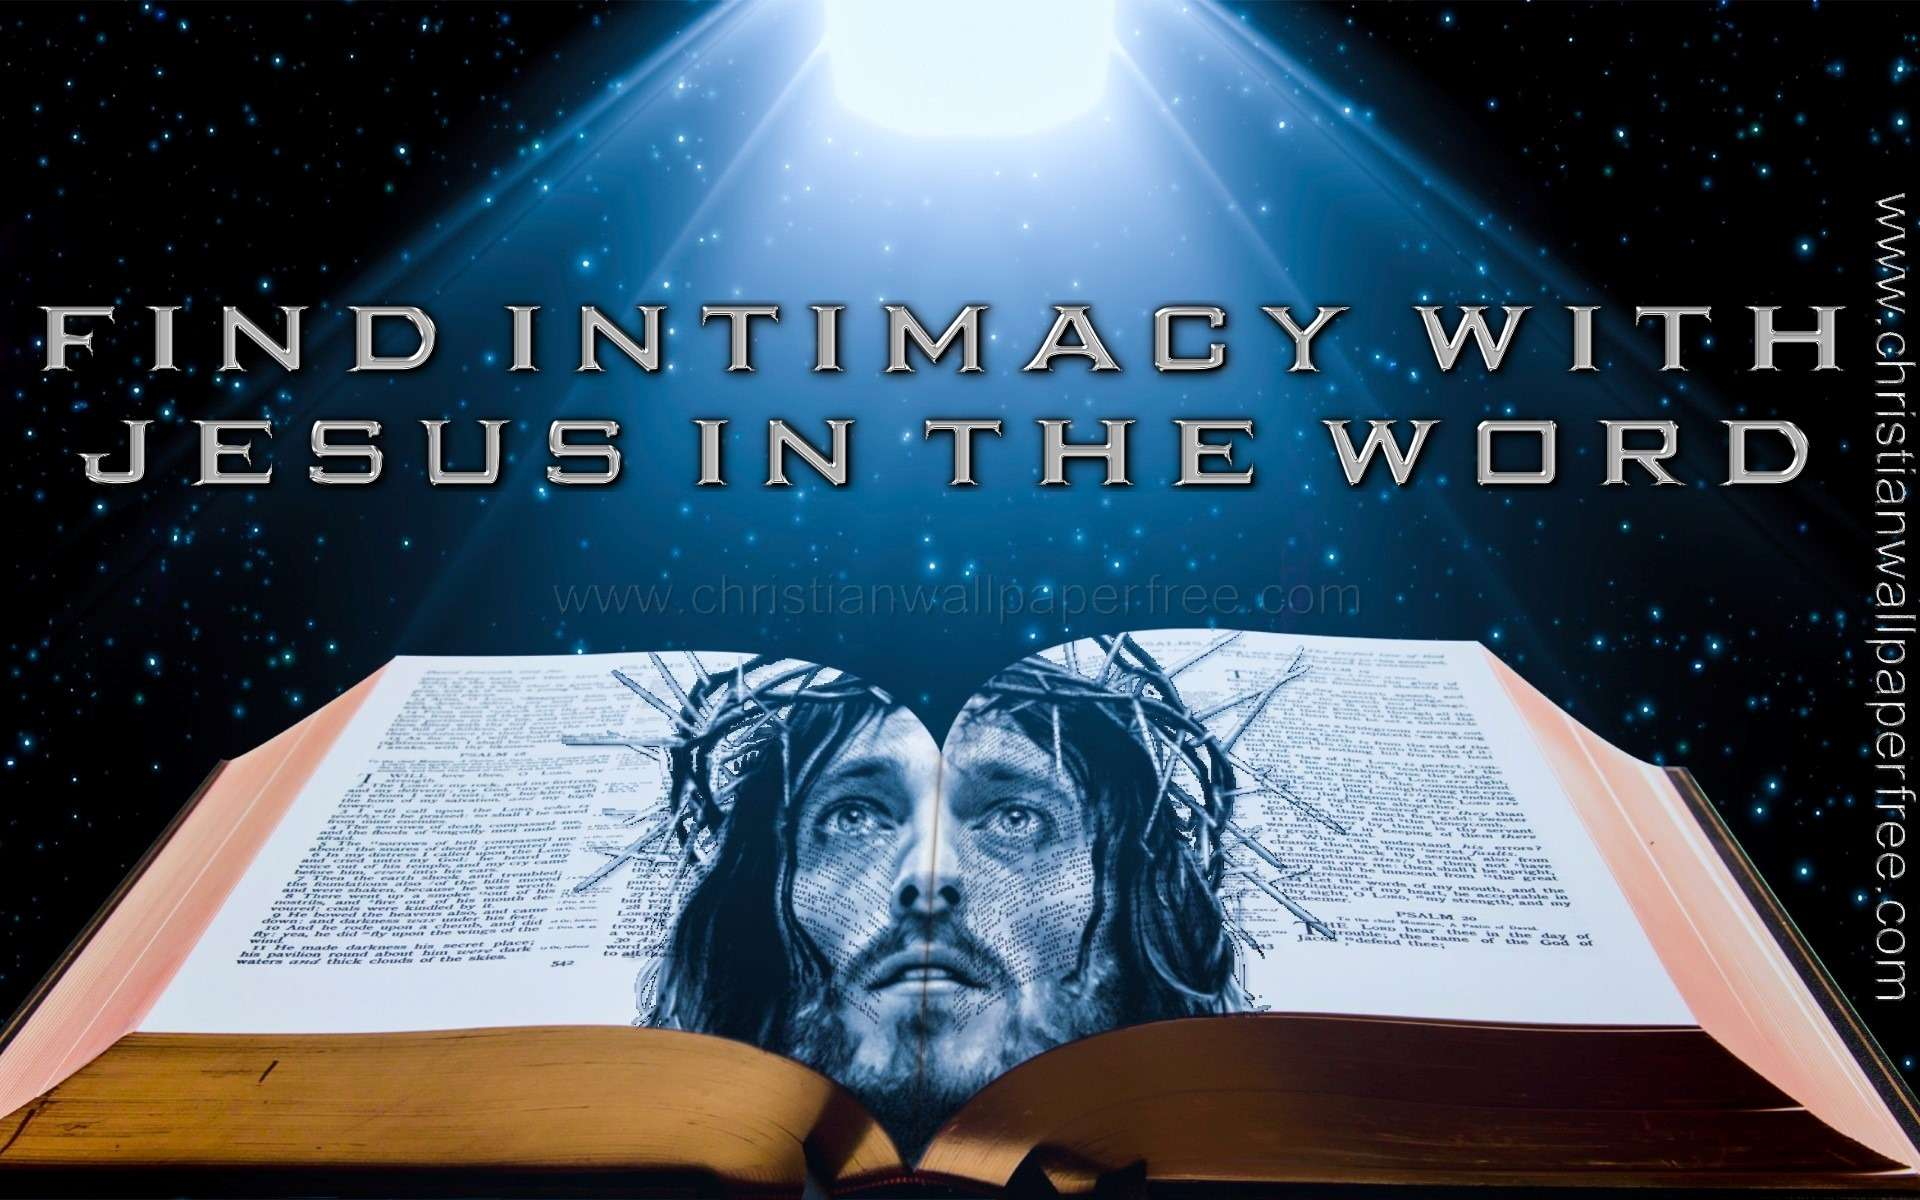 Find Intimacy With Jesus in the Word